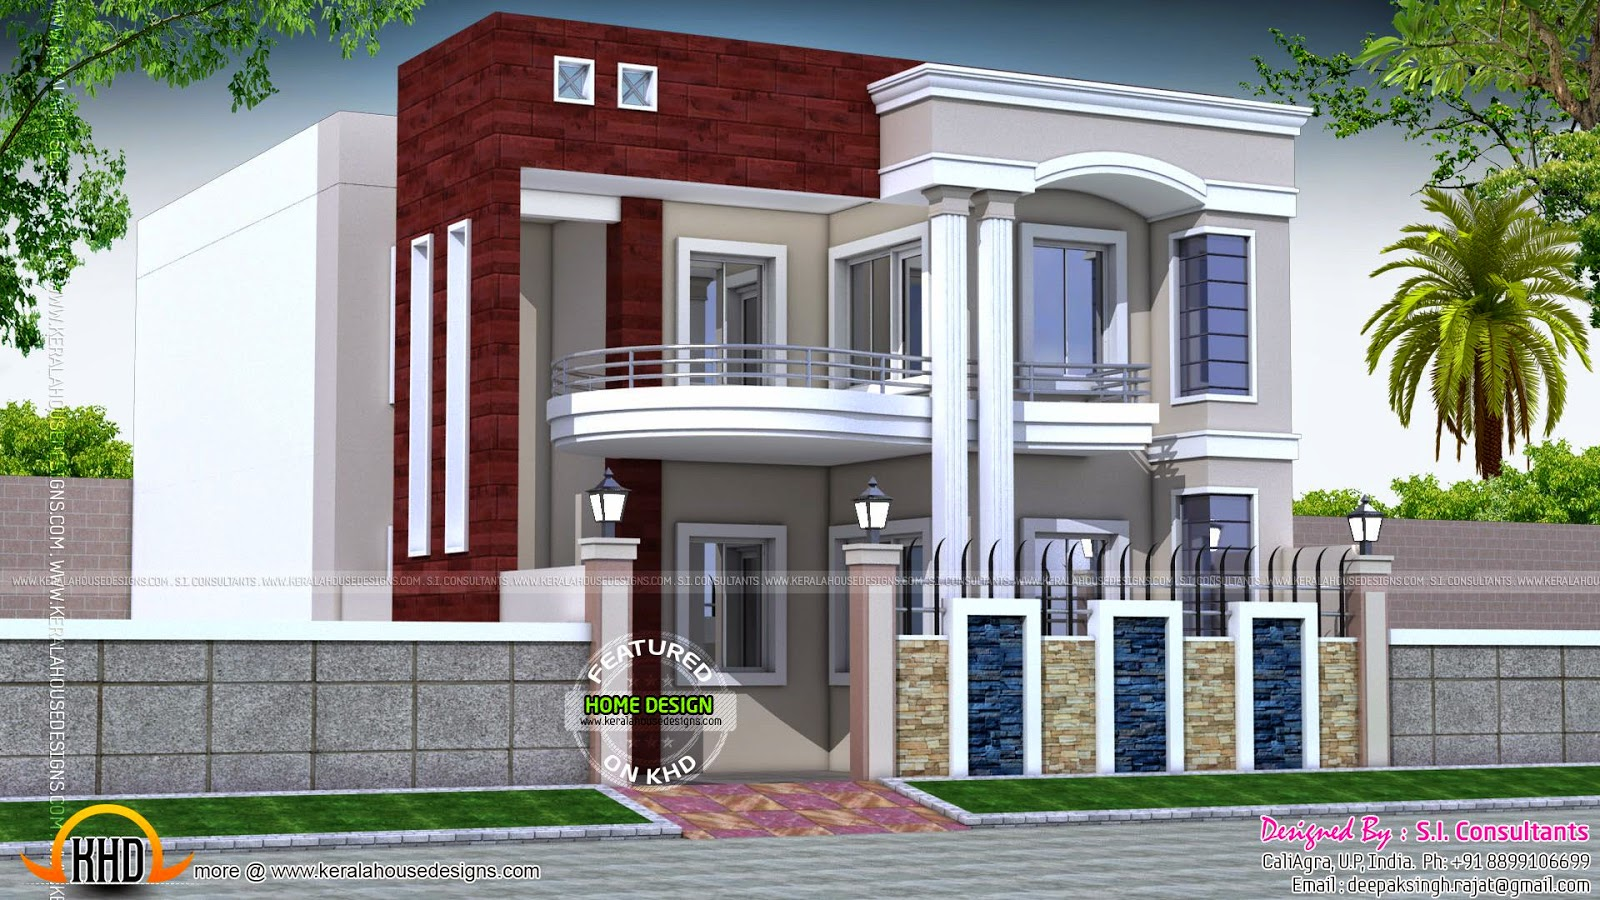 House design in north india kerala home design and floor for Free home designs india